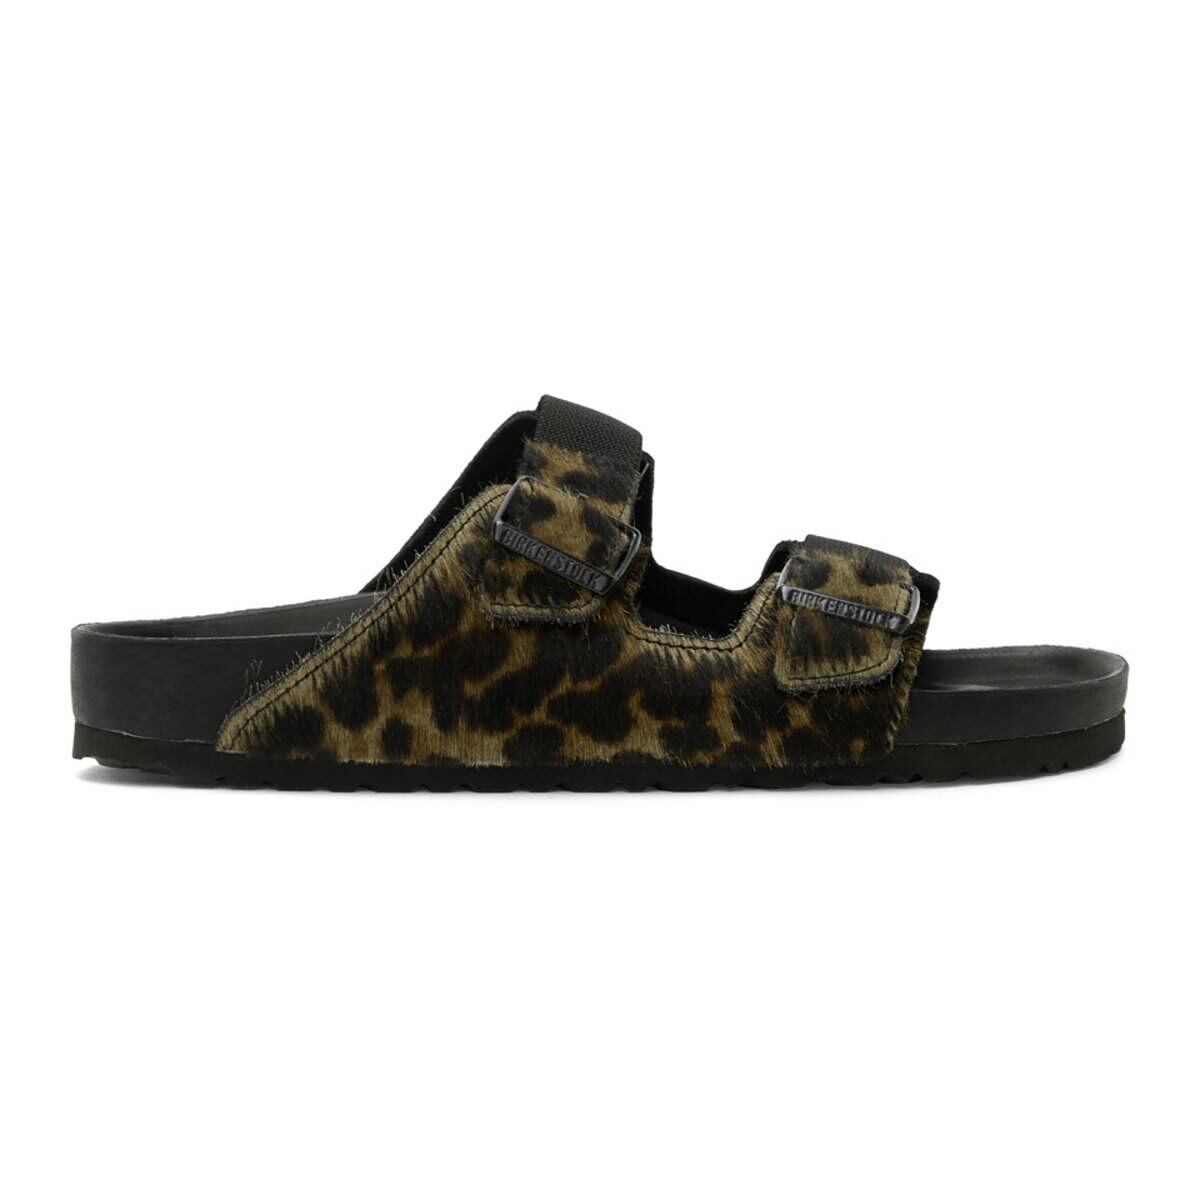 Random Identities Green Birkenstock Edition Pony Hair Leopard Arizona Sandals Ssense USA MEN Men SHOES Mens SANDALS